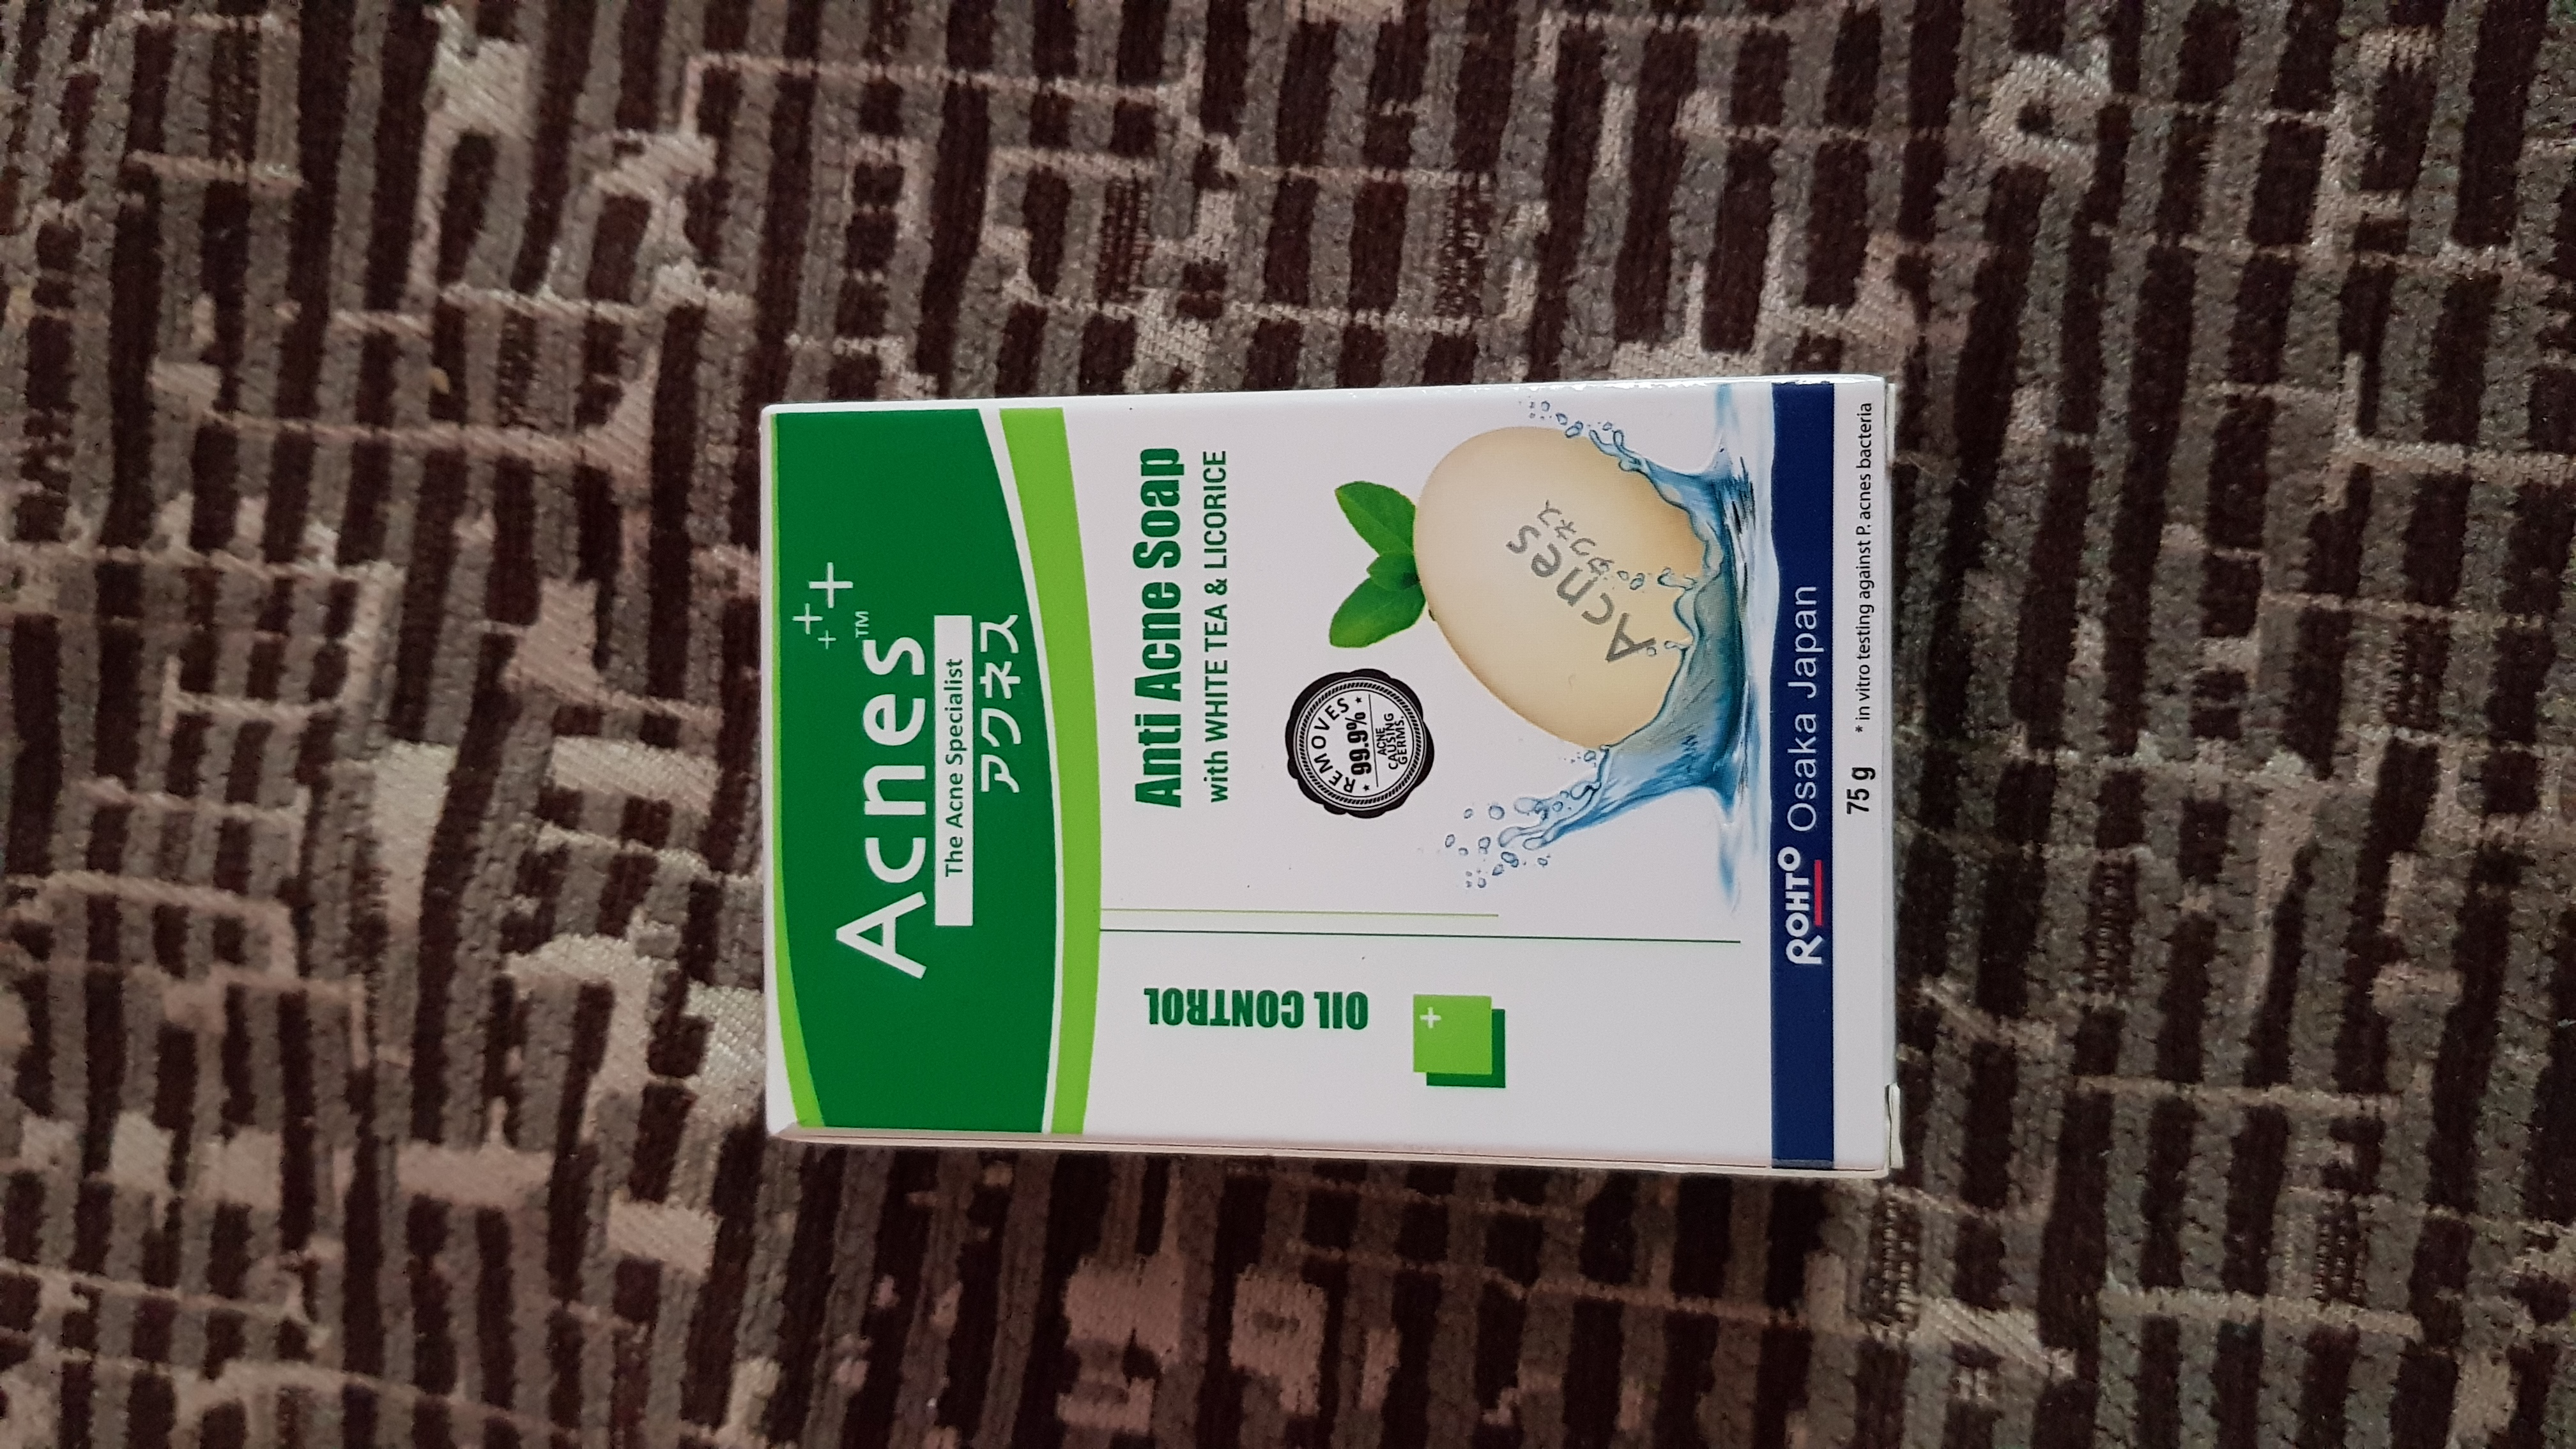 Acnes Oil Control Soap-Not for sensitive skin-By krishnapriya_kondi-2